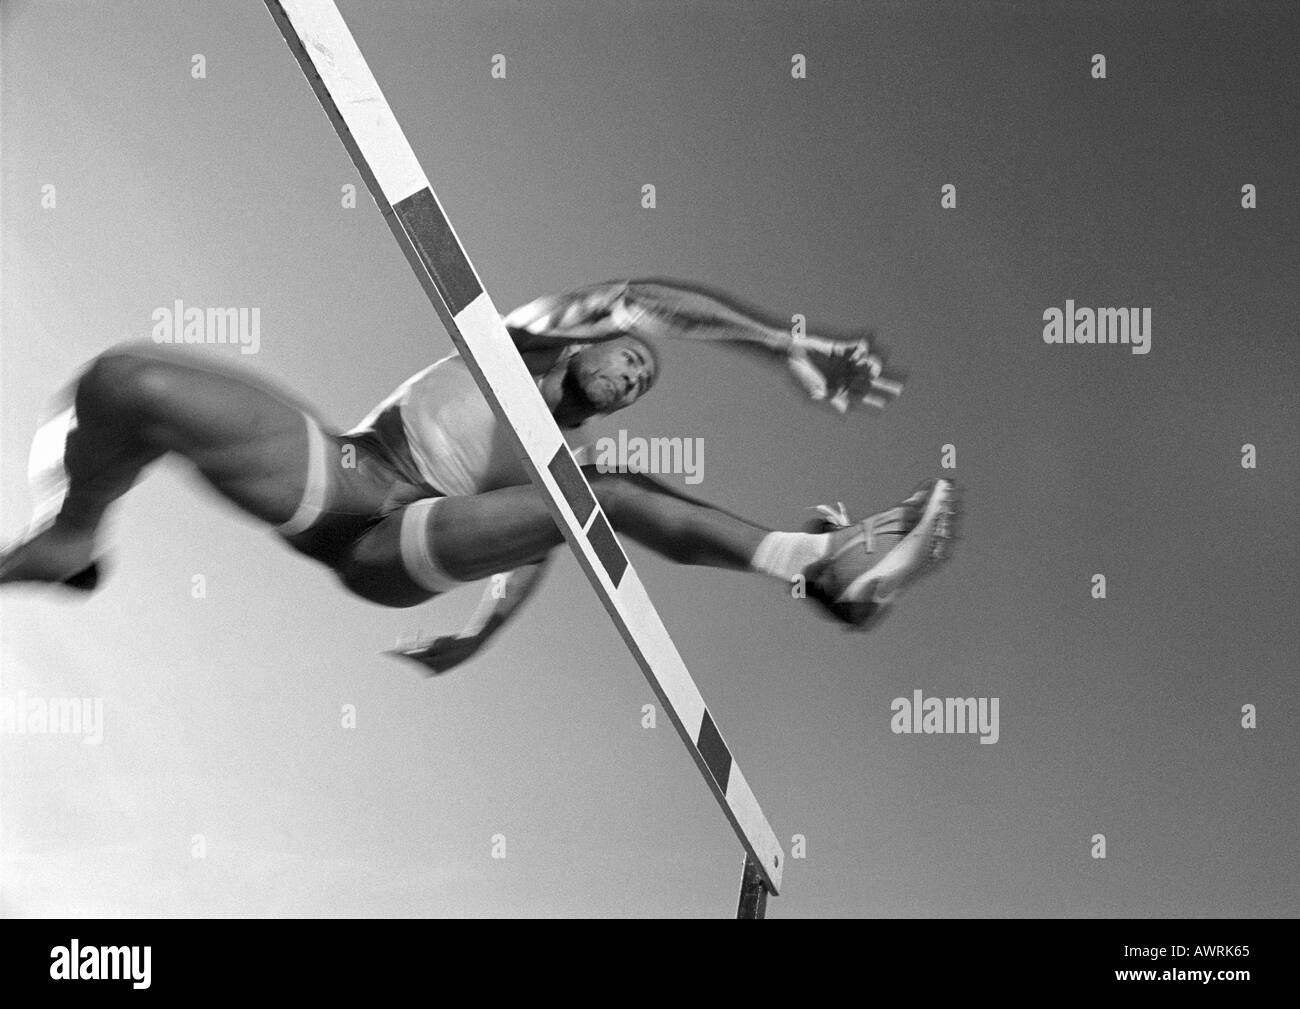 Male athlete jumping hurdle, low angle view, blurred motion, b&w - Stock Image